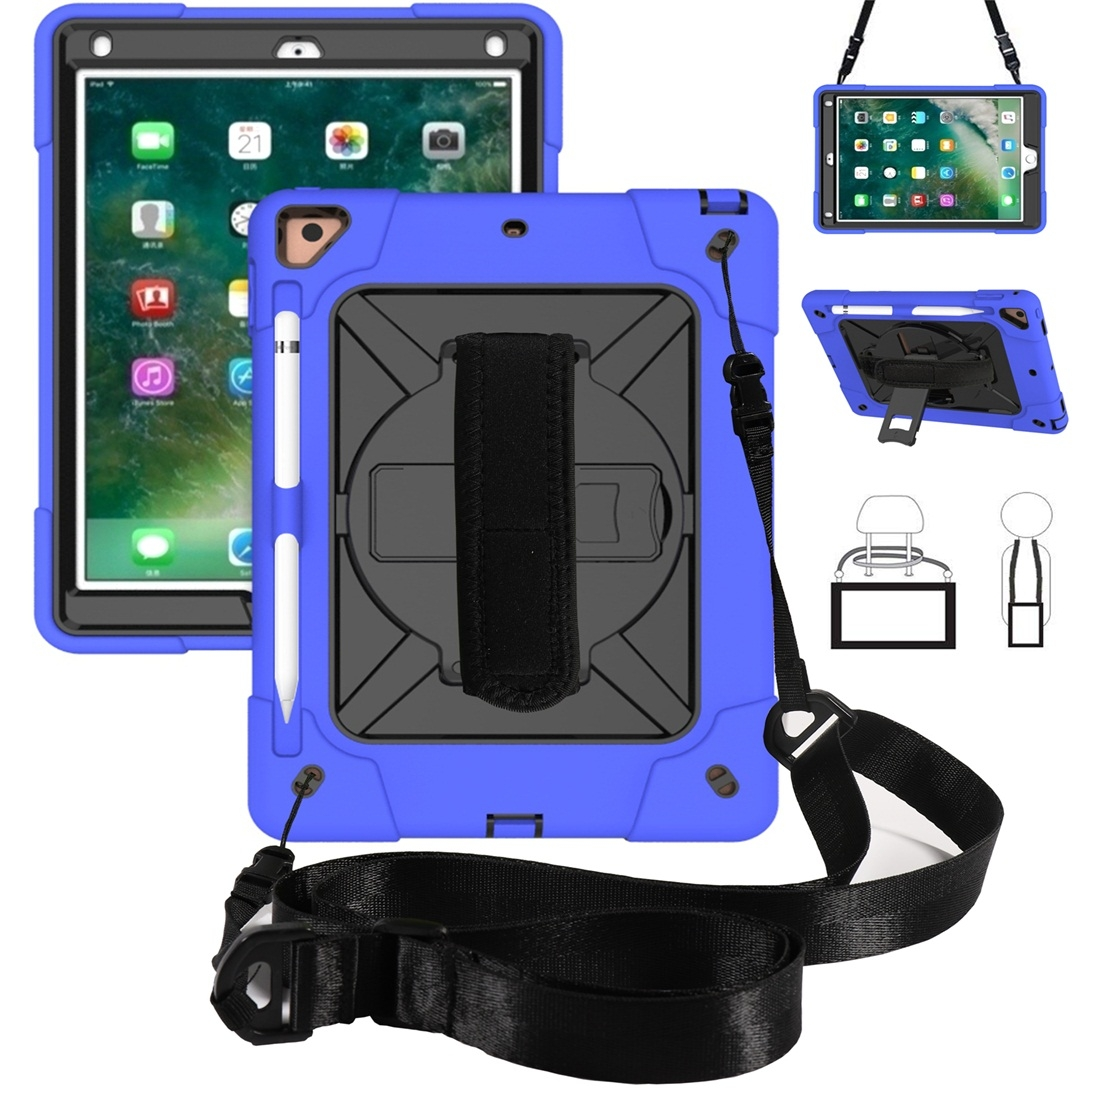 iPad 9.7 Case Contrasting Color Tough Durable Armor Case (Dark Blue/Black)